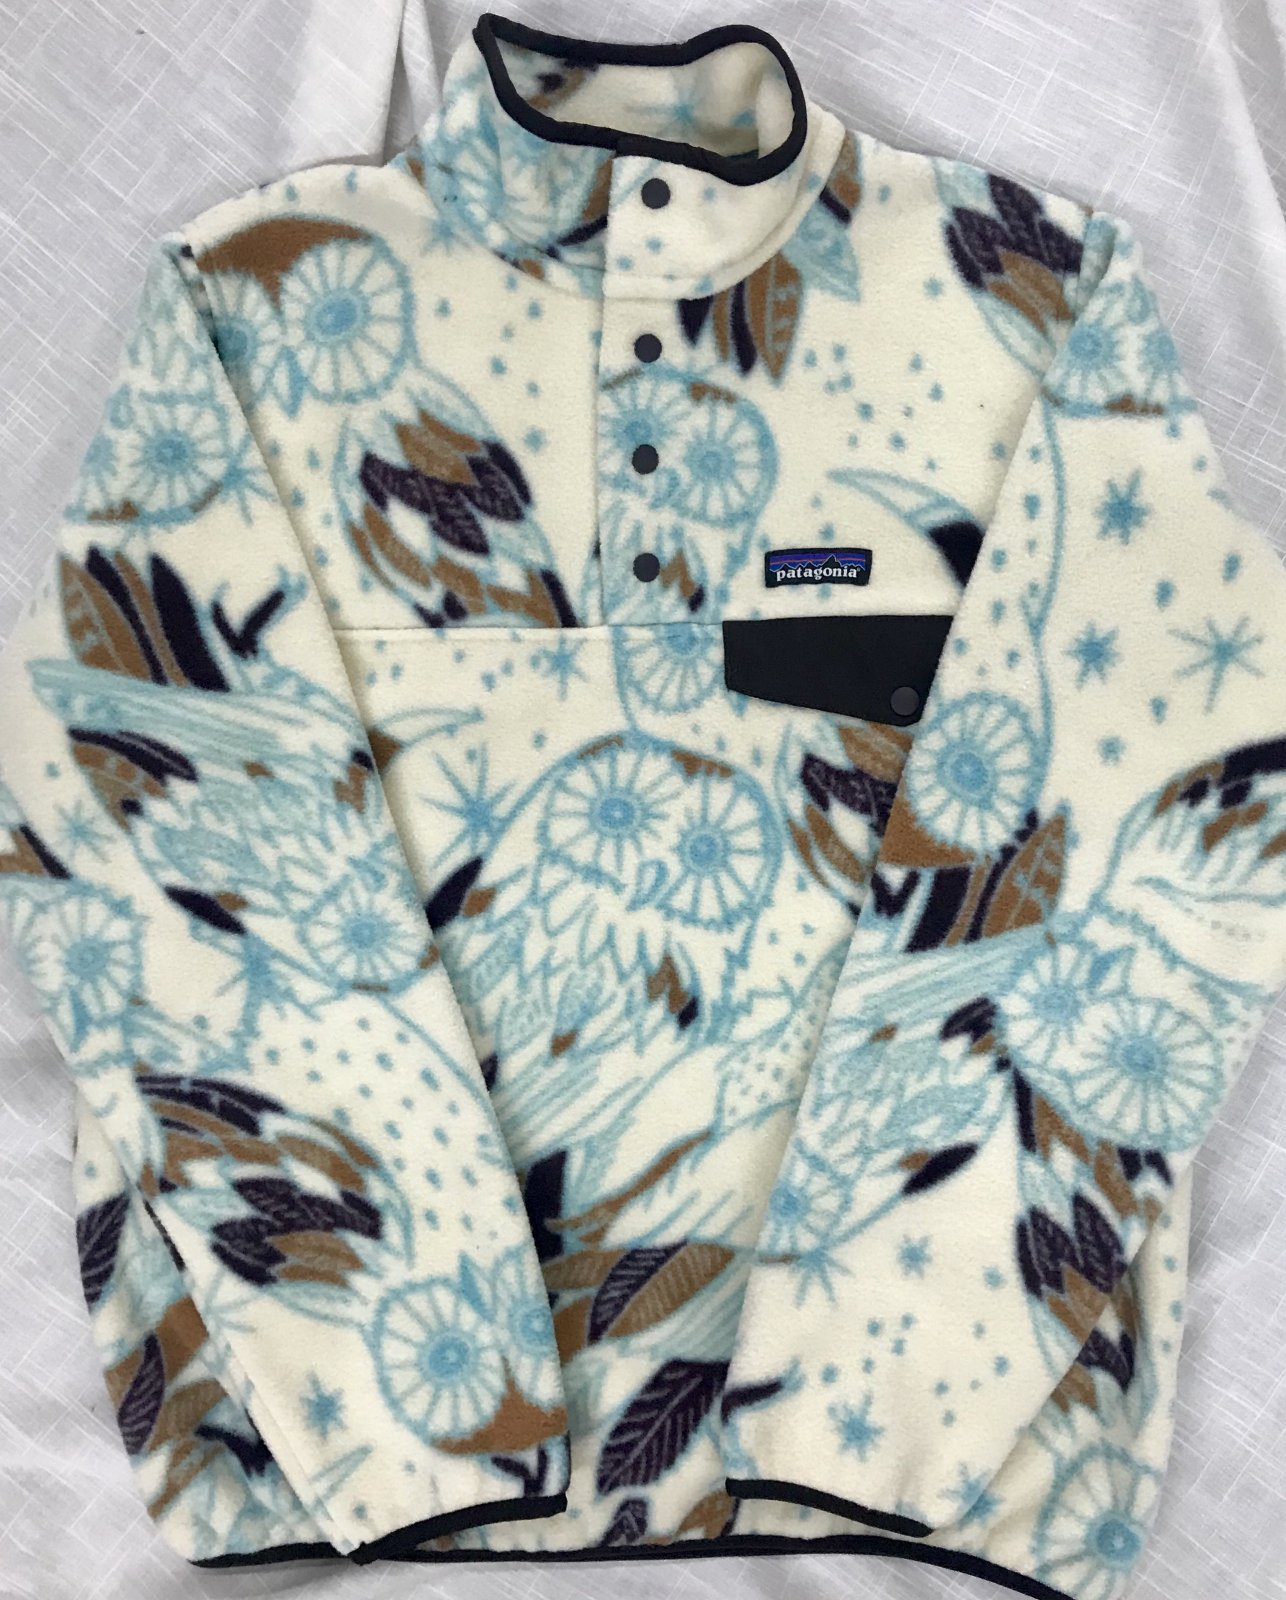 Patagonia Print Lt. Wt. Synchilla Snap-T Pullover